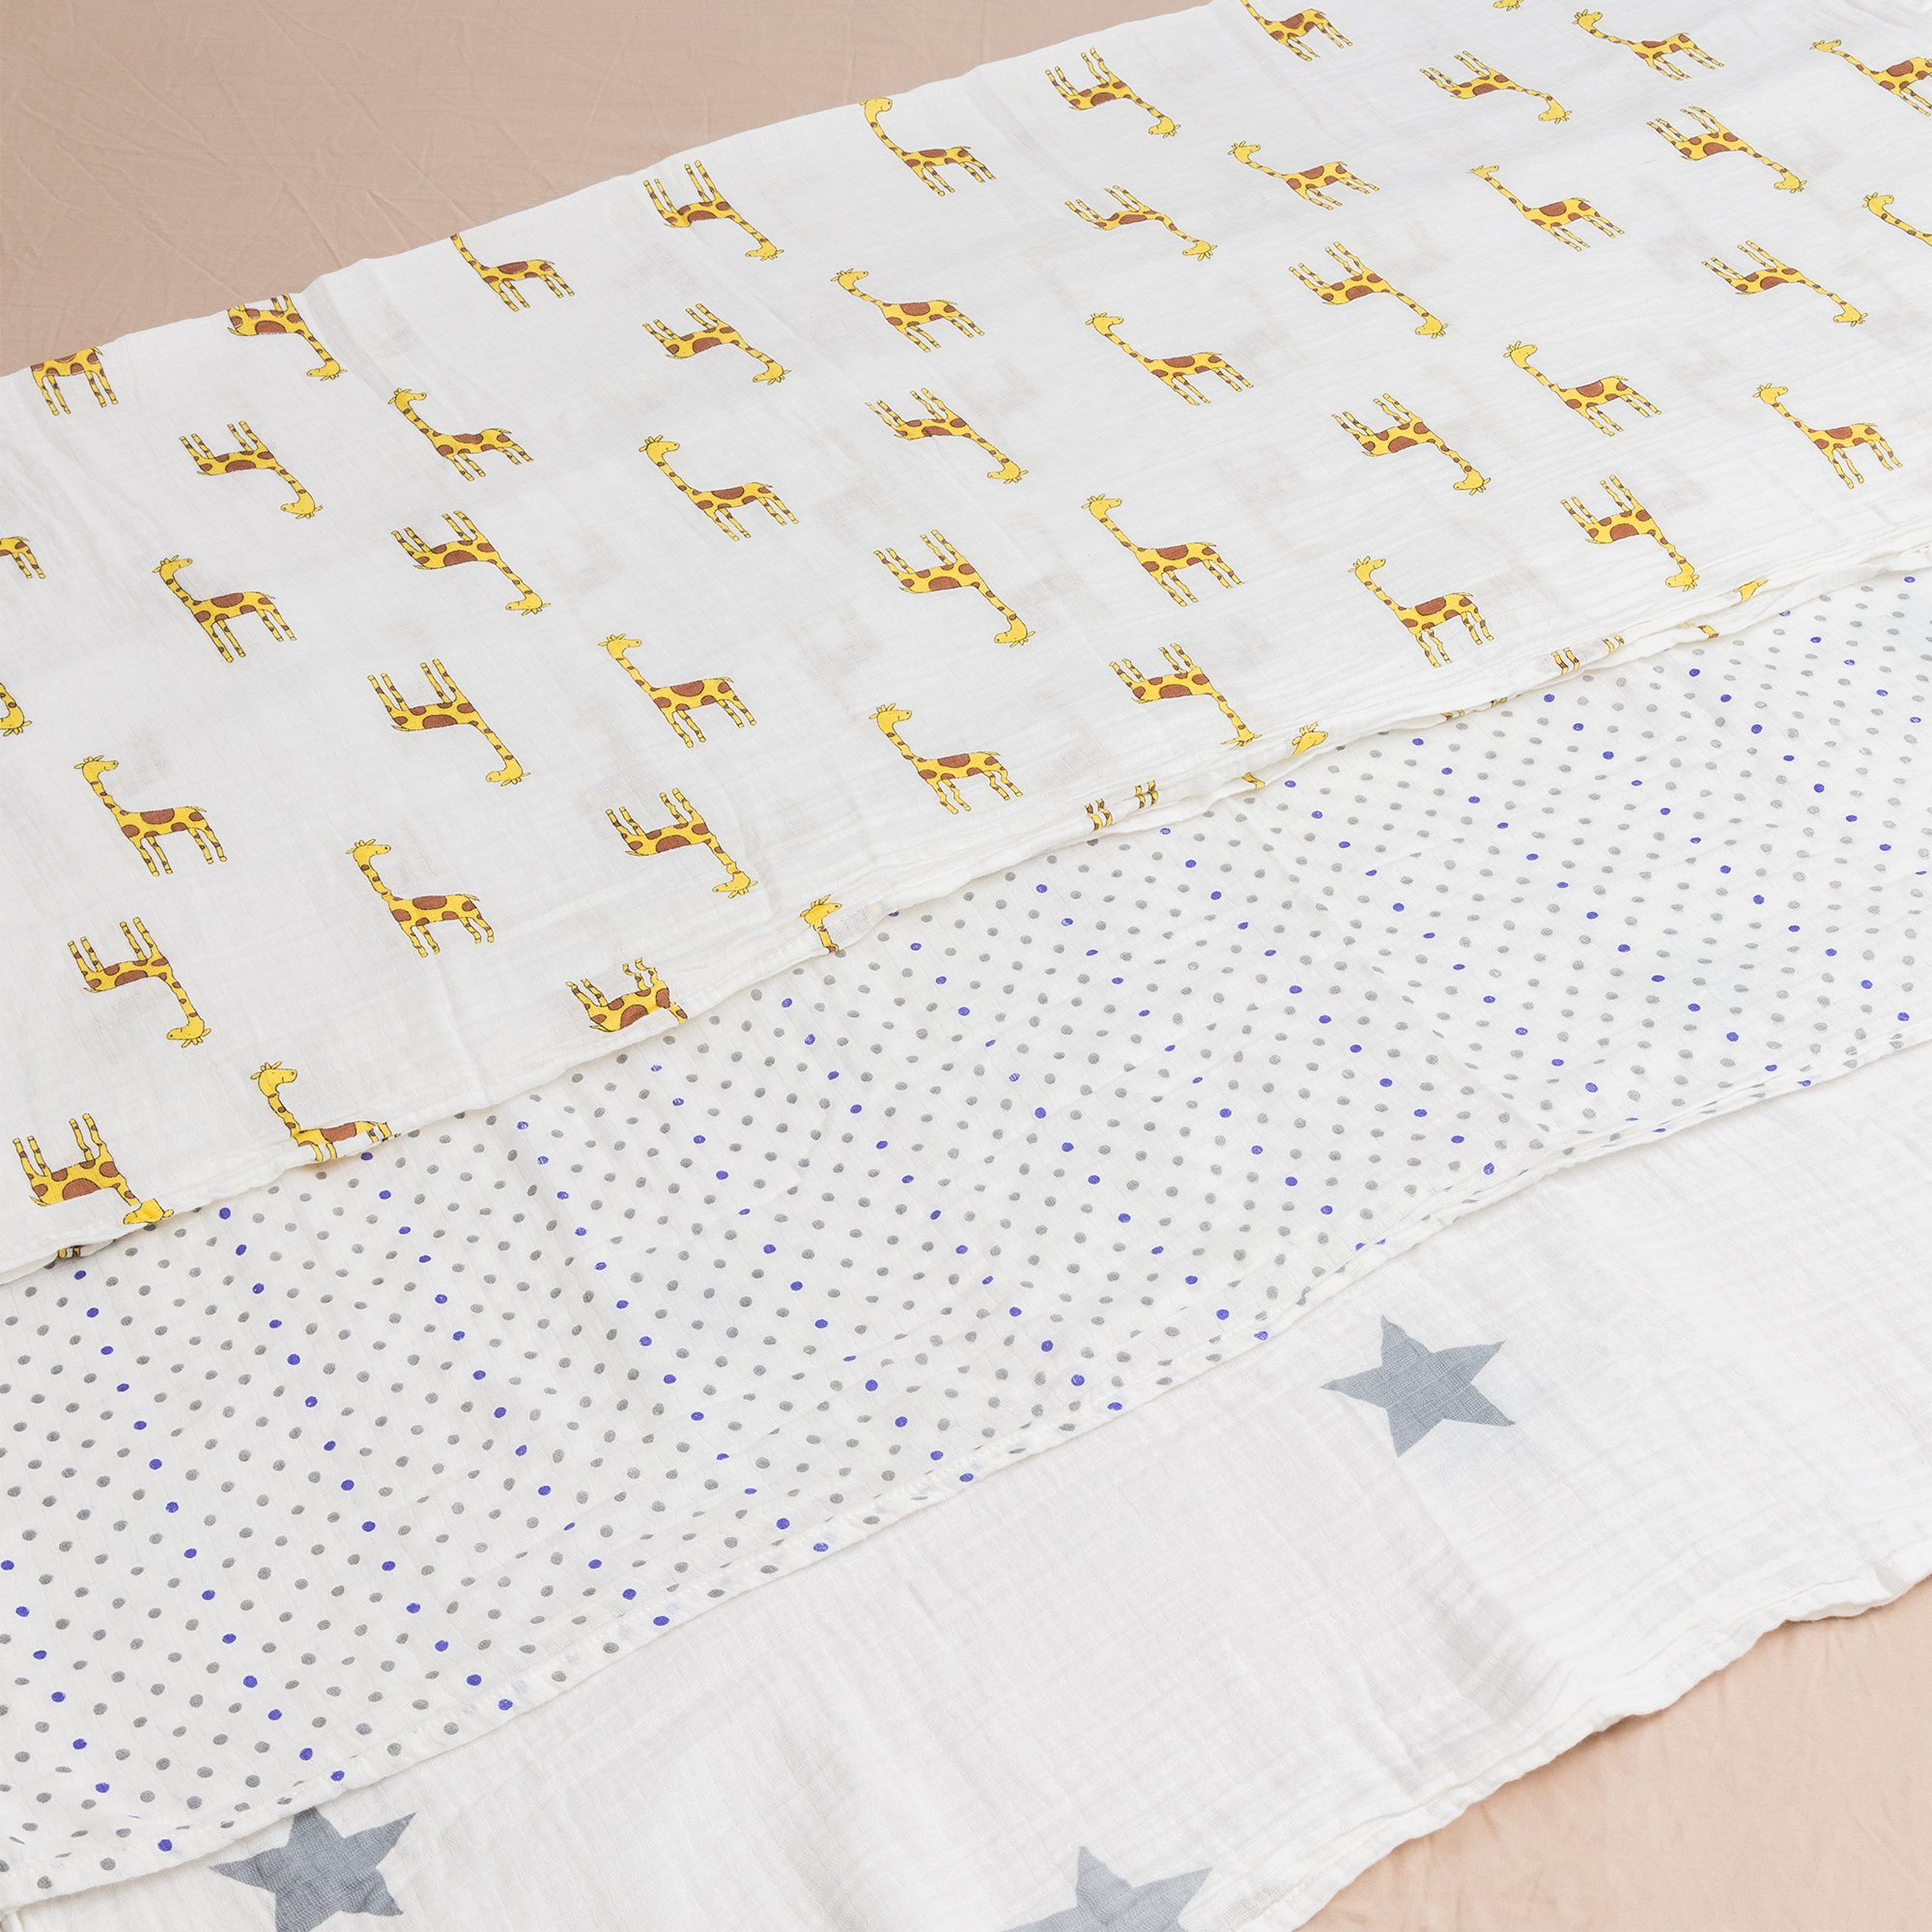 Muslin Swaddle Blankets for Sensitive Baby\'s - 47x47 inches - Unisex neutral design ideal for boy or girl baby